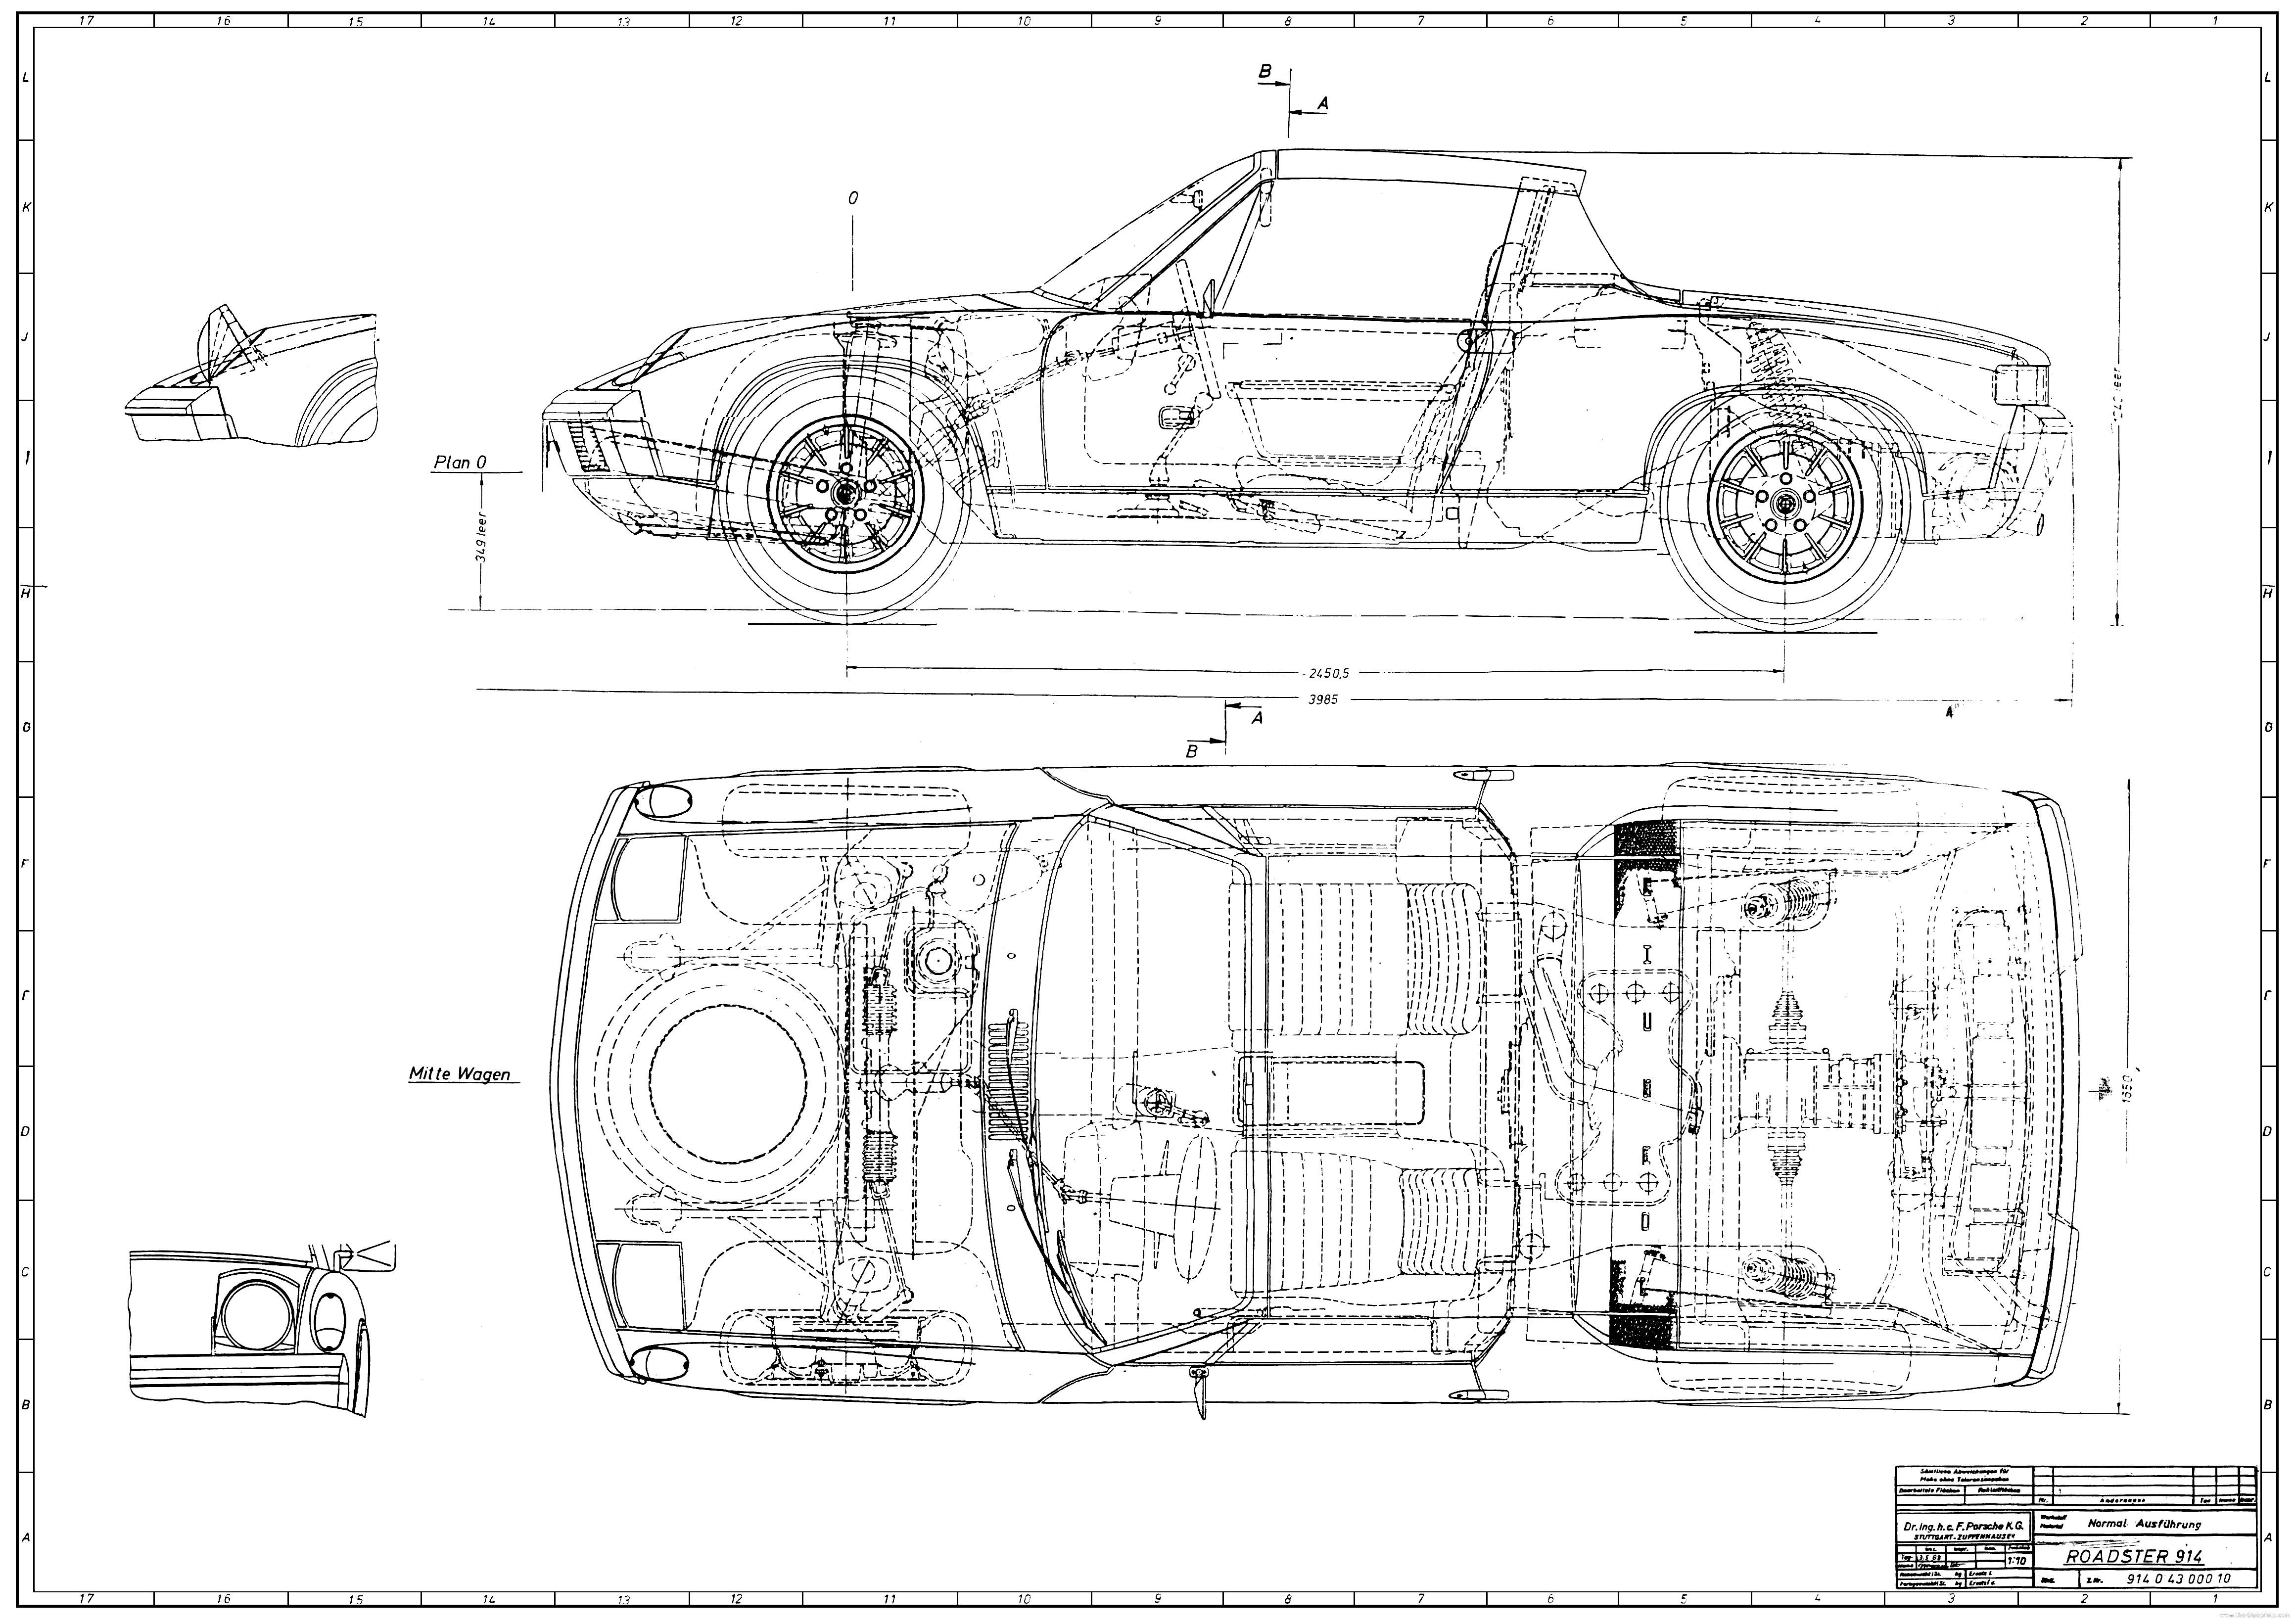 Eng 10 besides Product product id 159 as well Porsche 914 besides 68 74 NOVA TUBE CHASSIS BLUEPRINT OSCARItem 423 08 510 BP moreover C5 Corvette Power Steering Diagram. on porsche 911 chassis